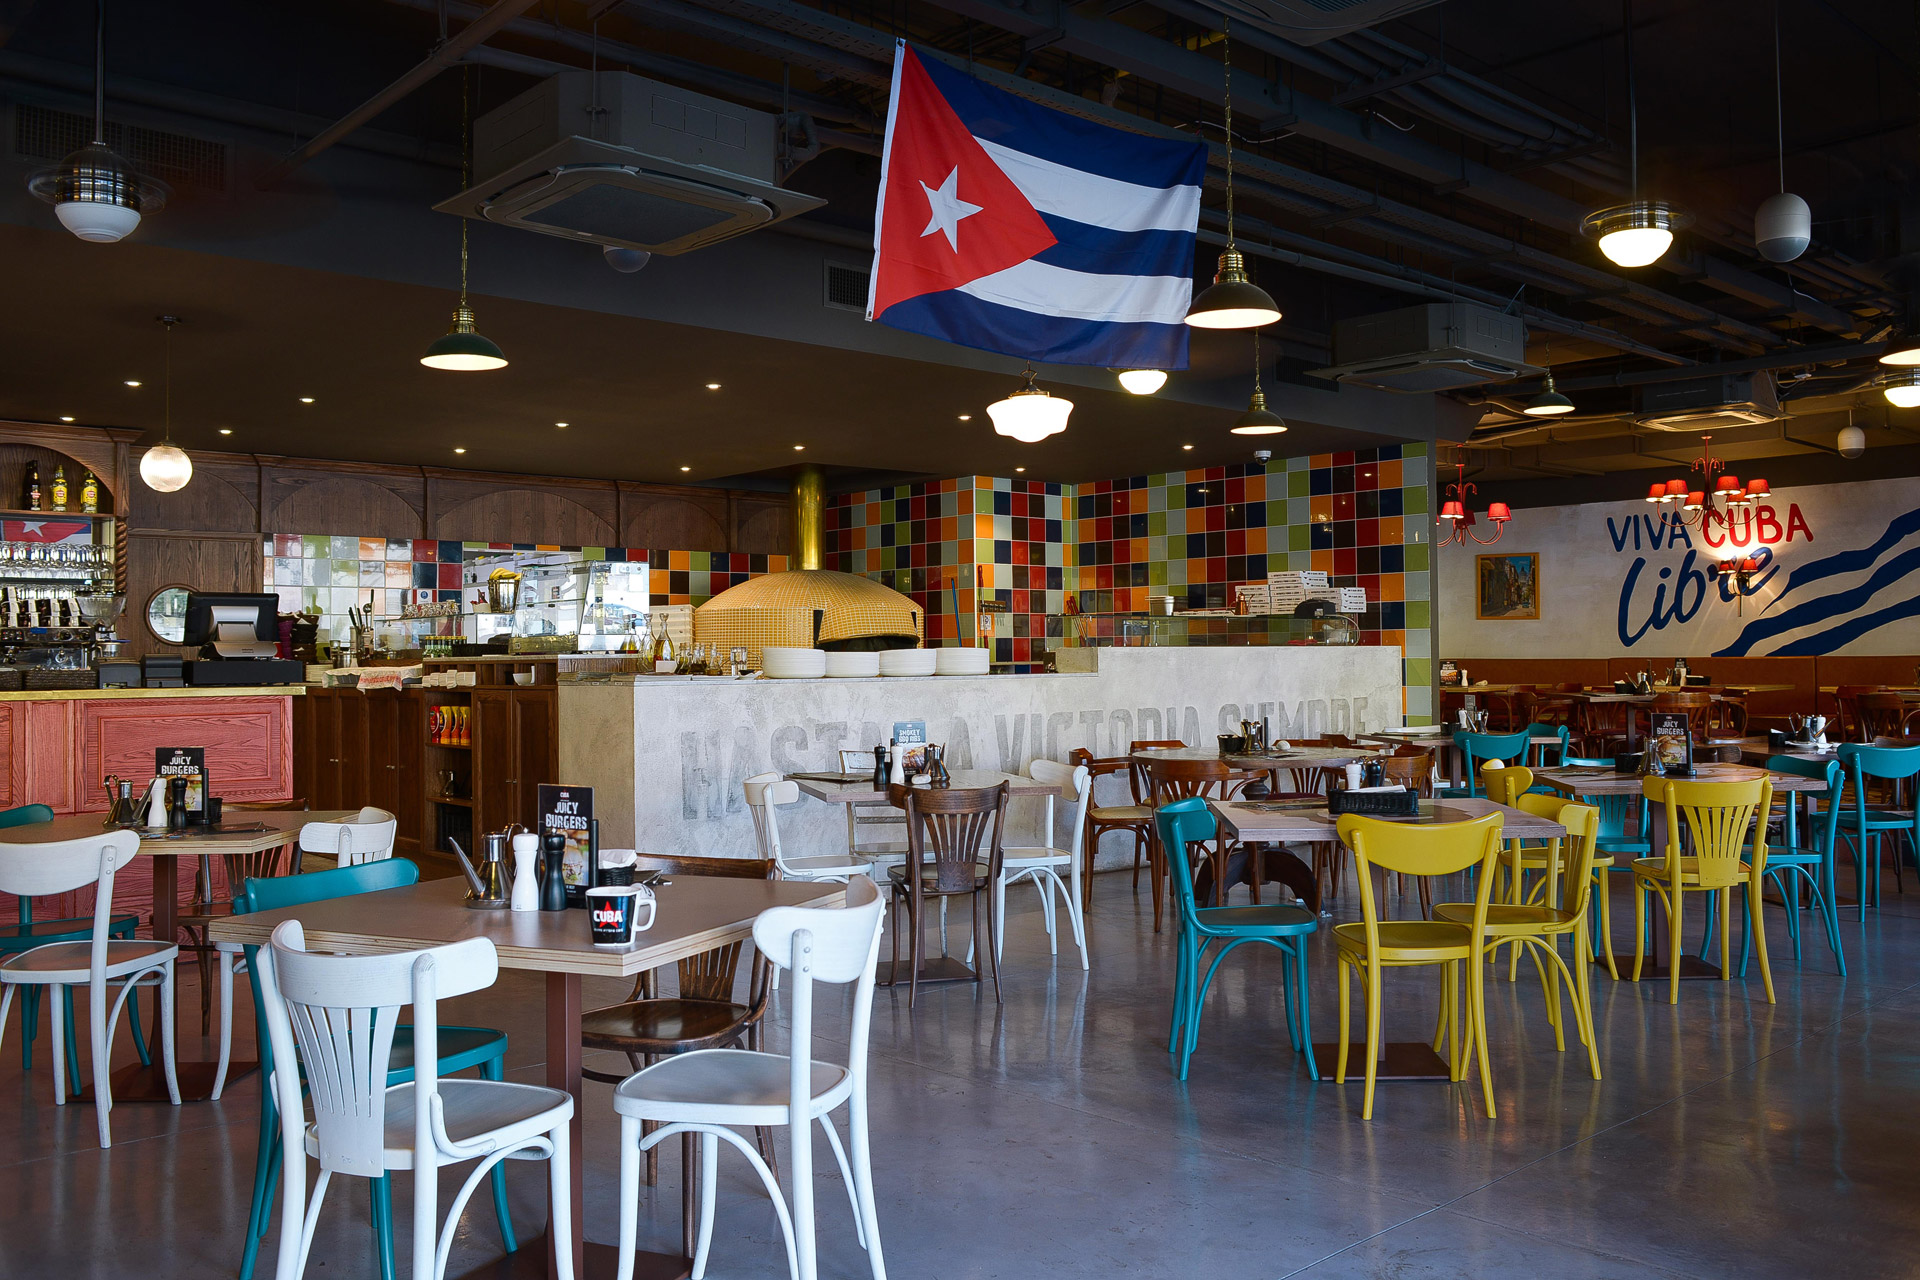 Our vintage-style lights decorate the Cuban-inspired interior of this restaurant